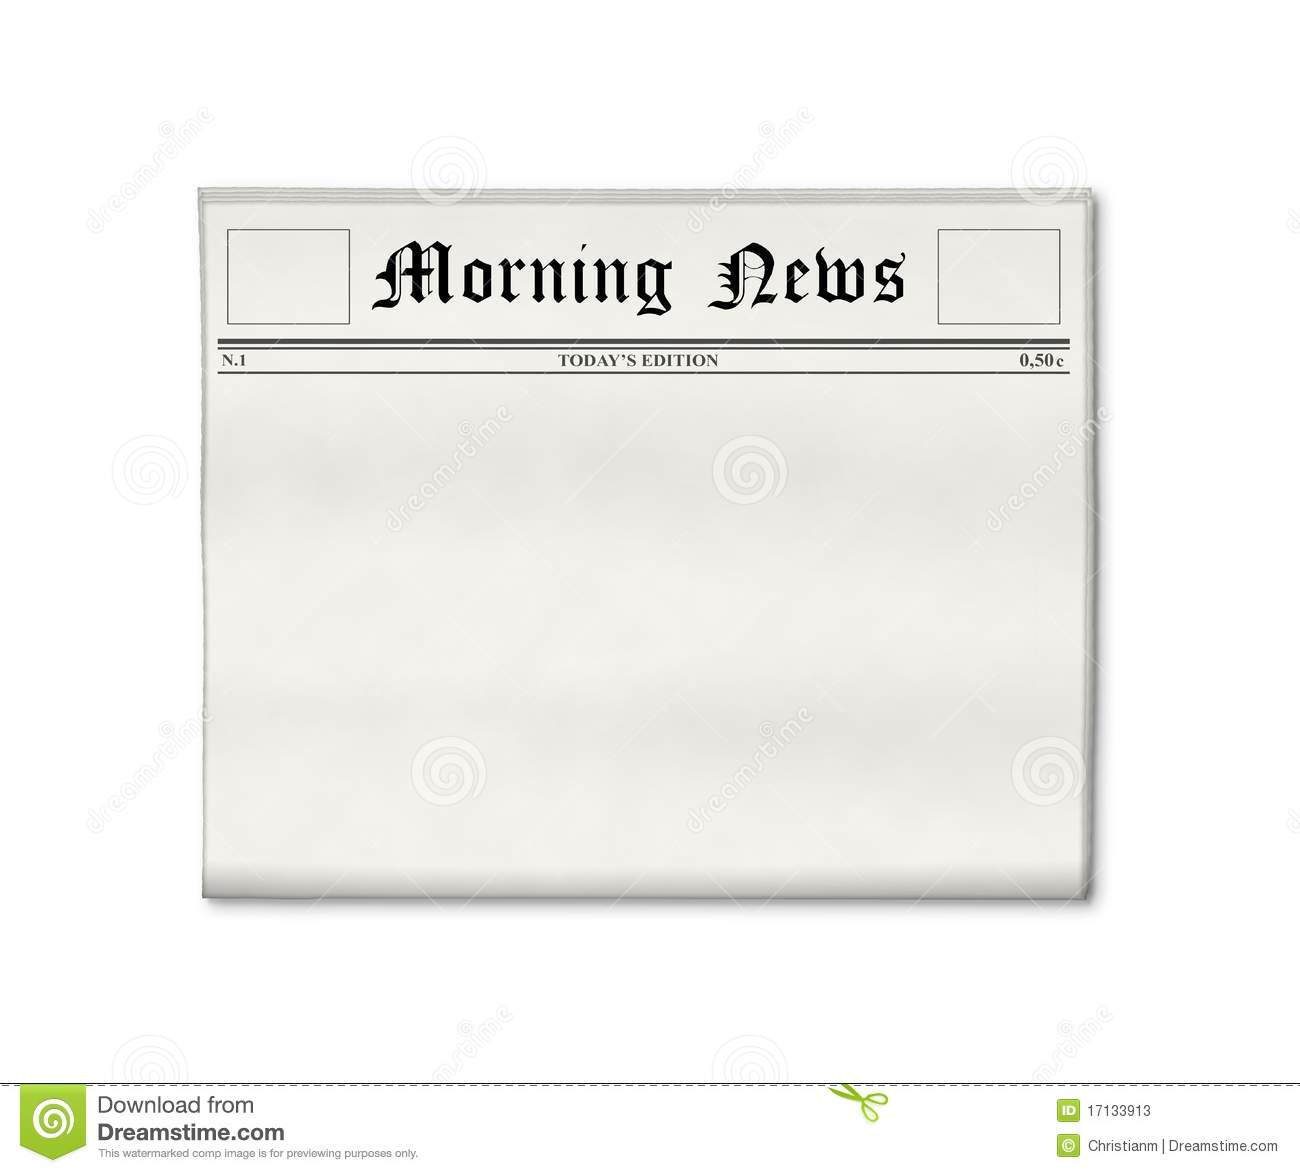 newspaper blank template stock illustration. illustration of